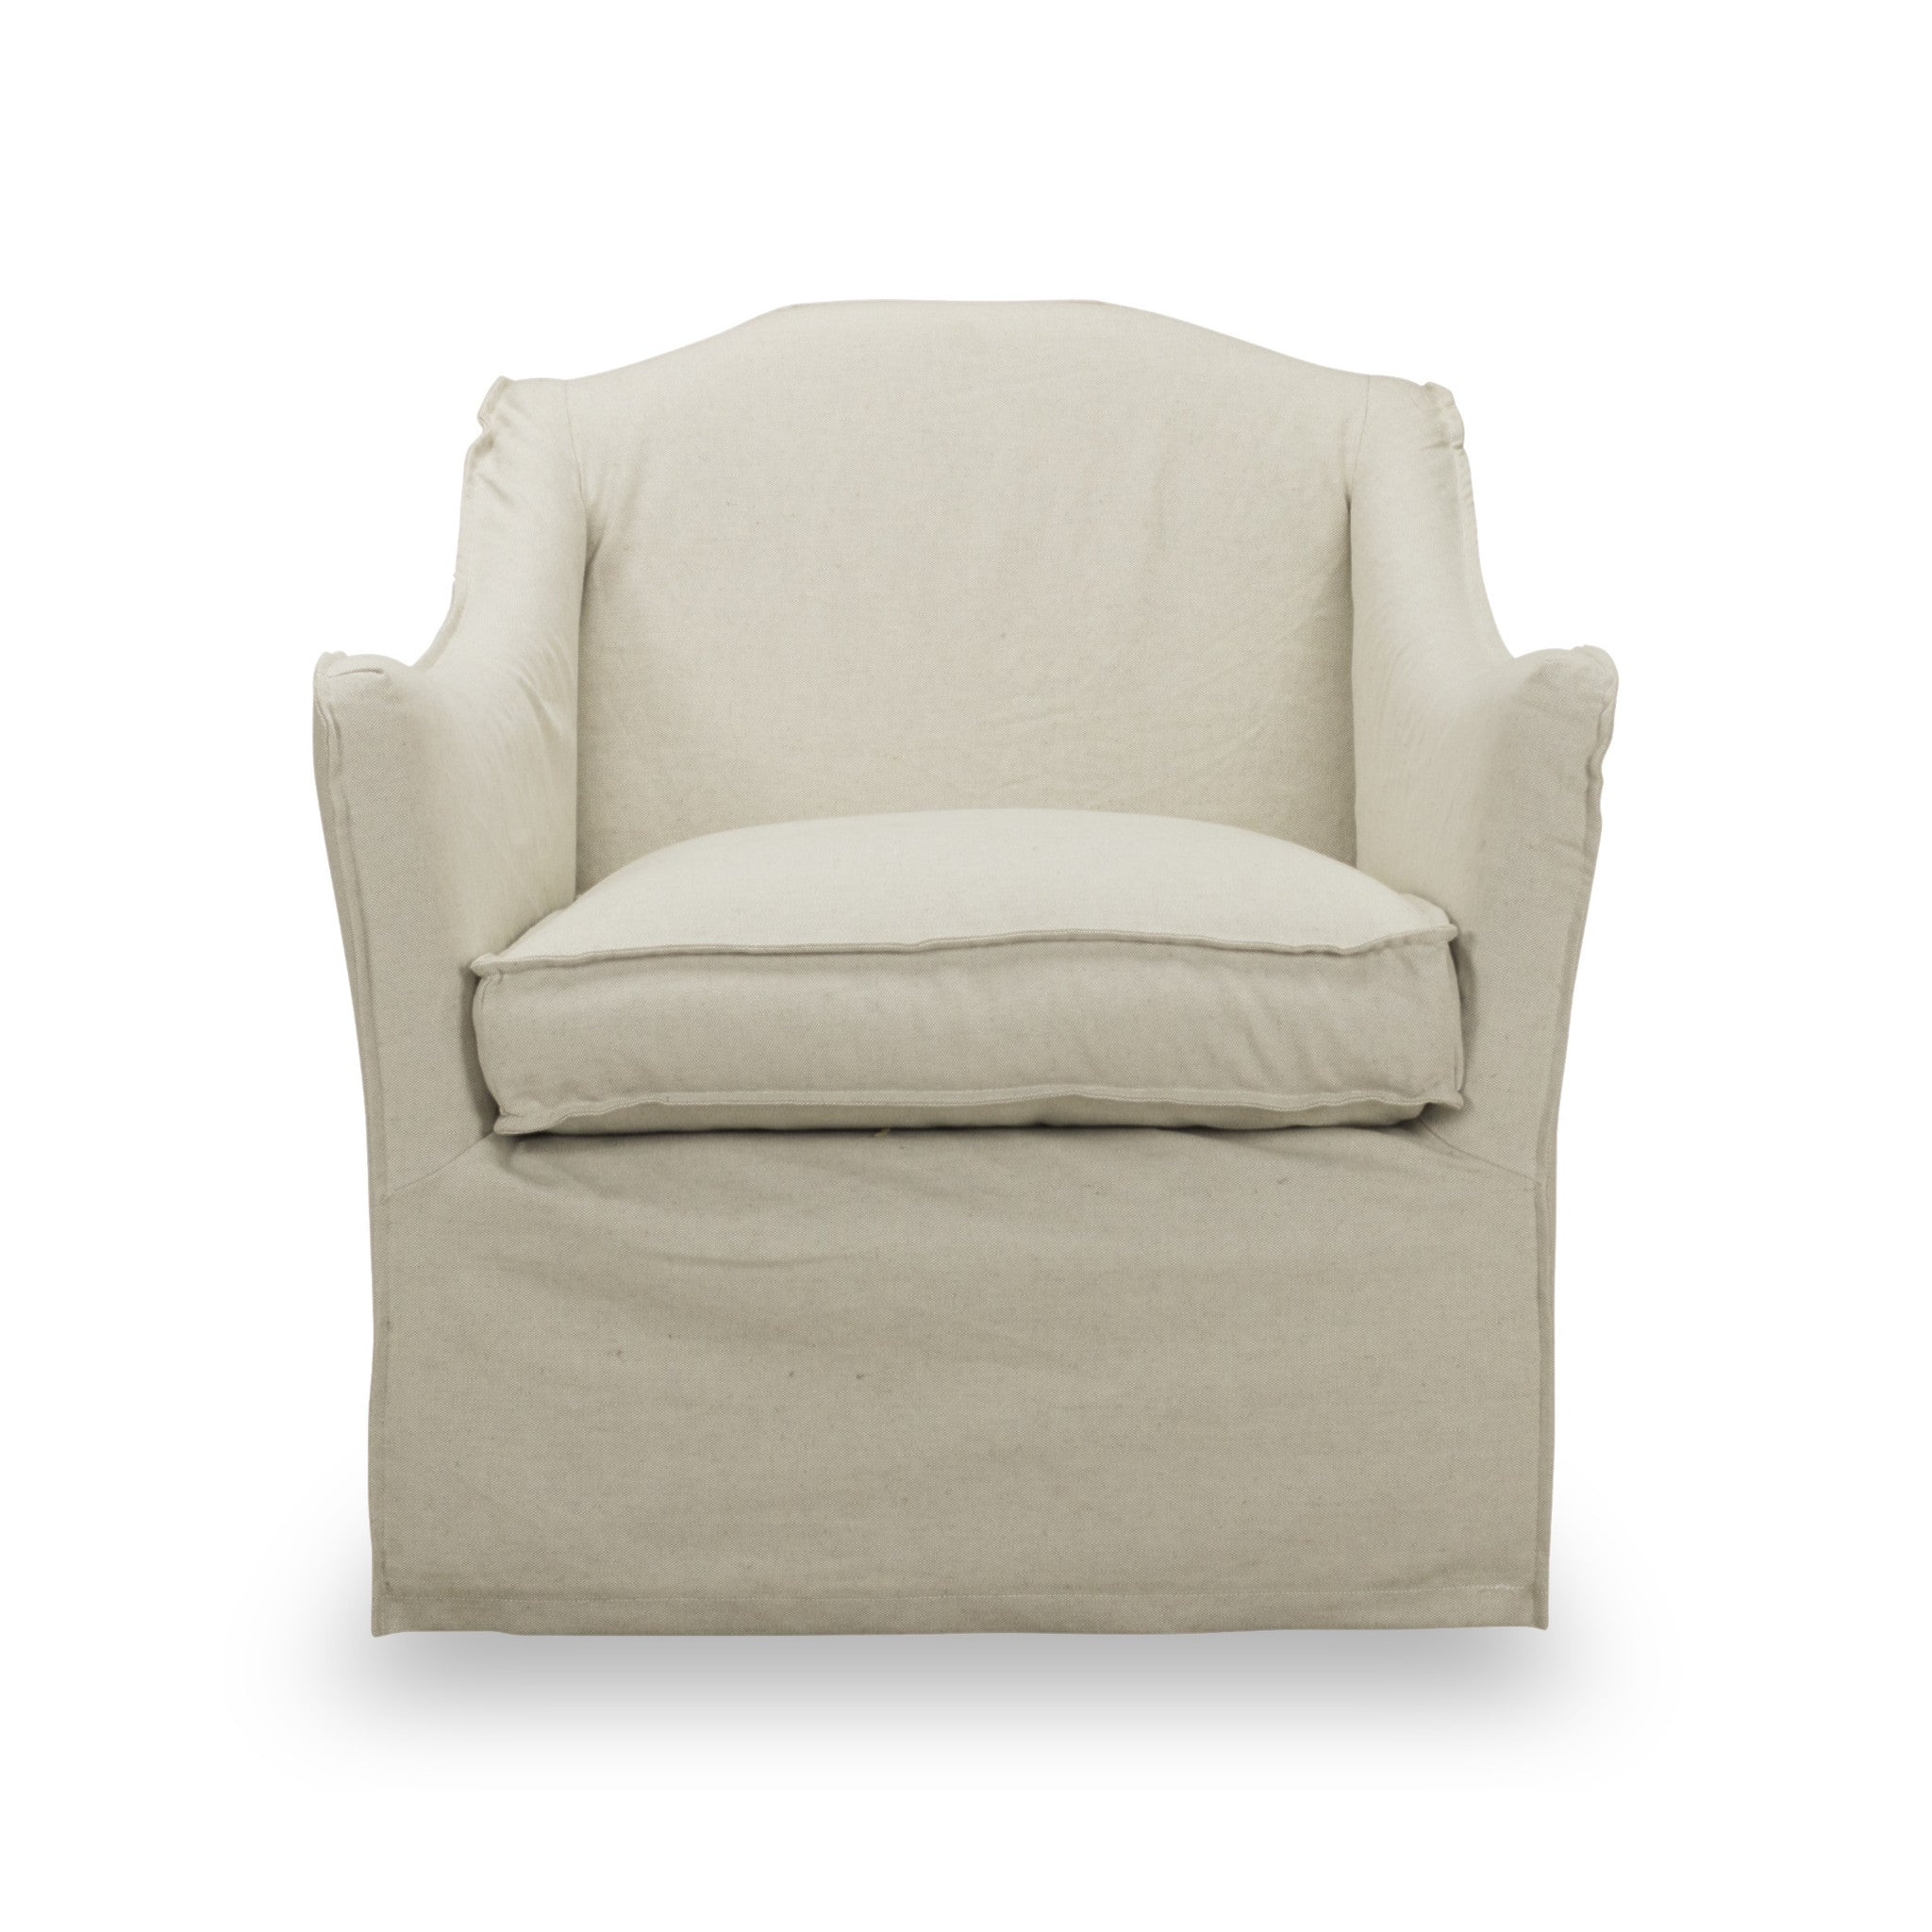 KEITH SLIP COVERED SWIVEL CHAIR SP02 Light Linen